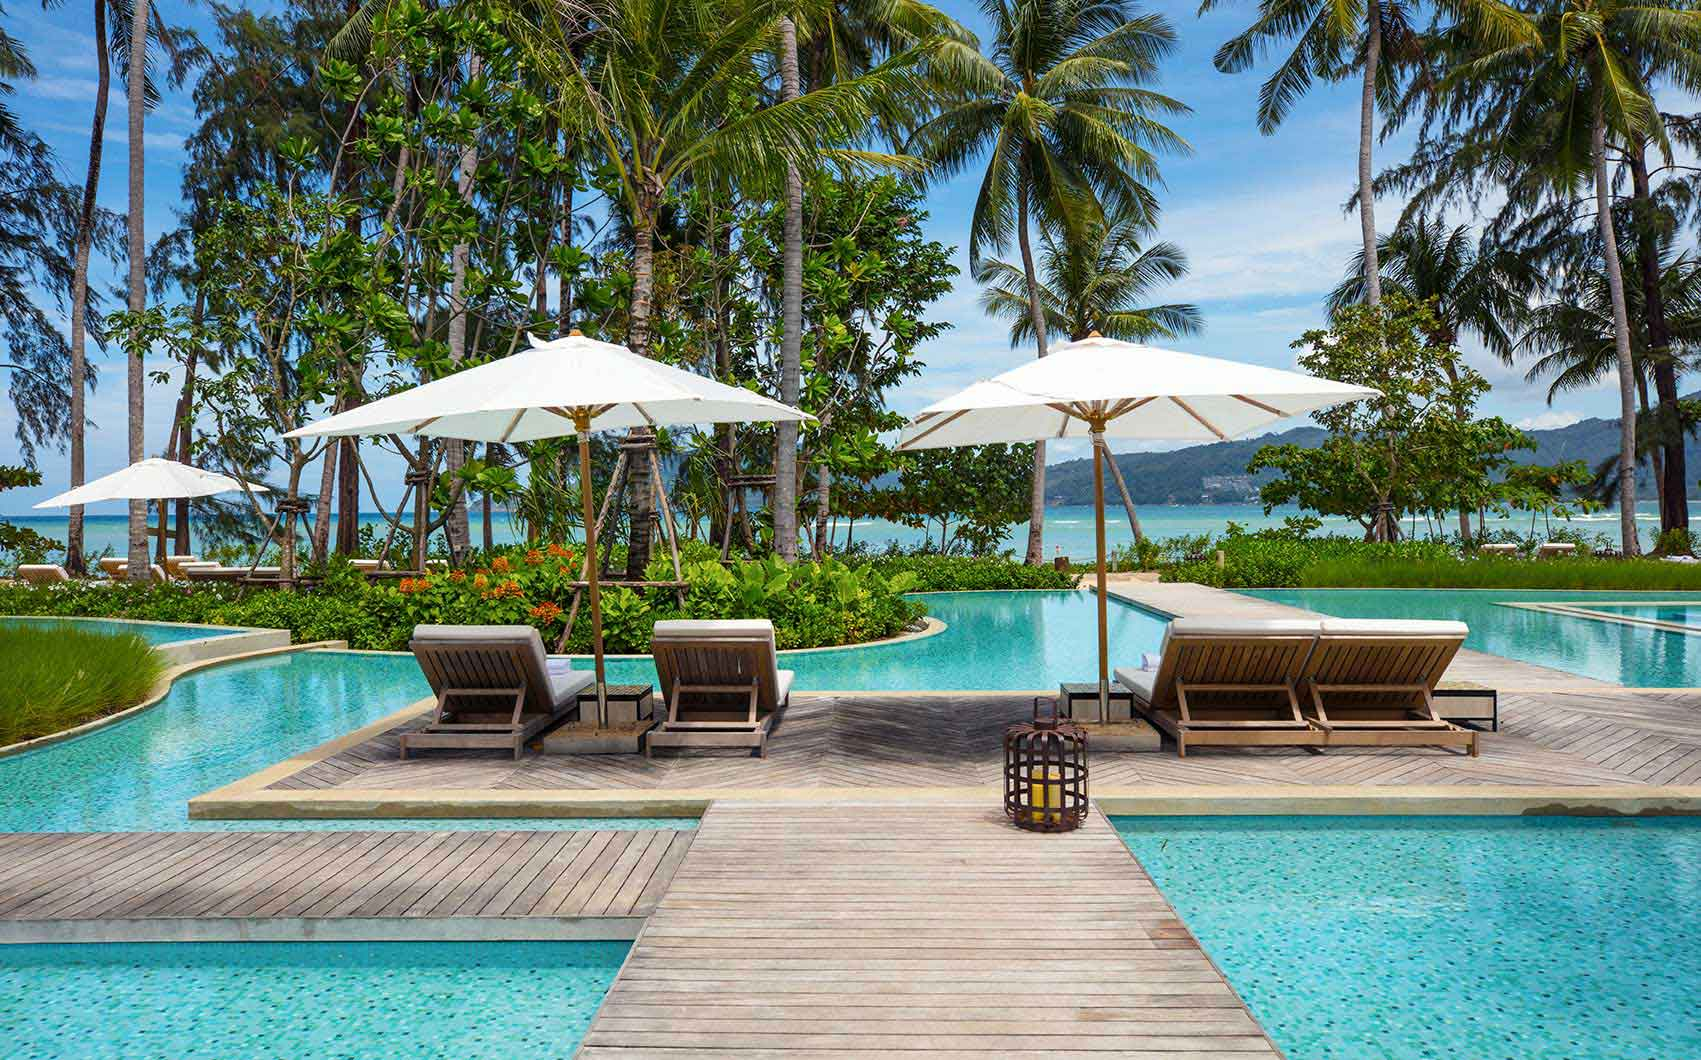 A Wellness Hotel in Phuket will guide you through the path of personal wellbeing!